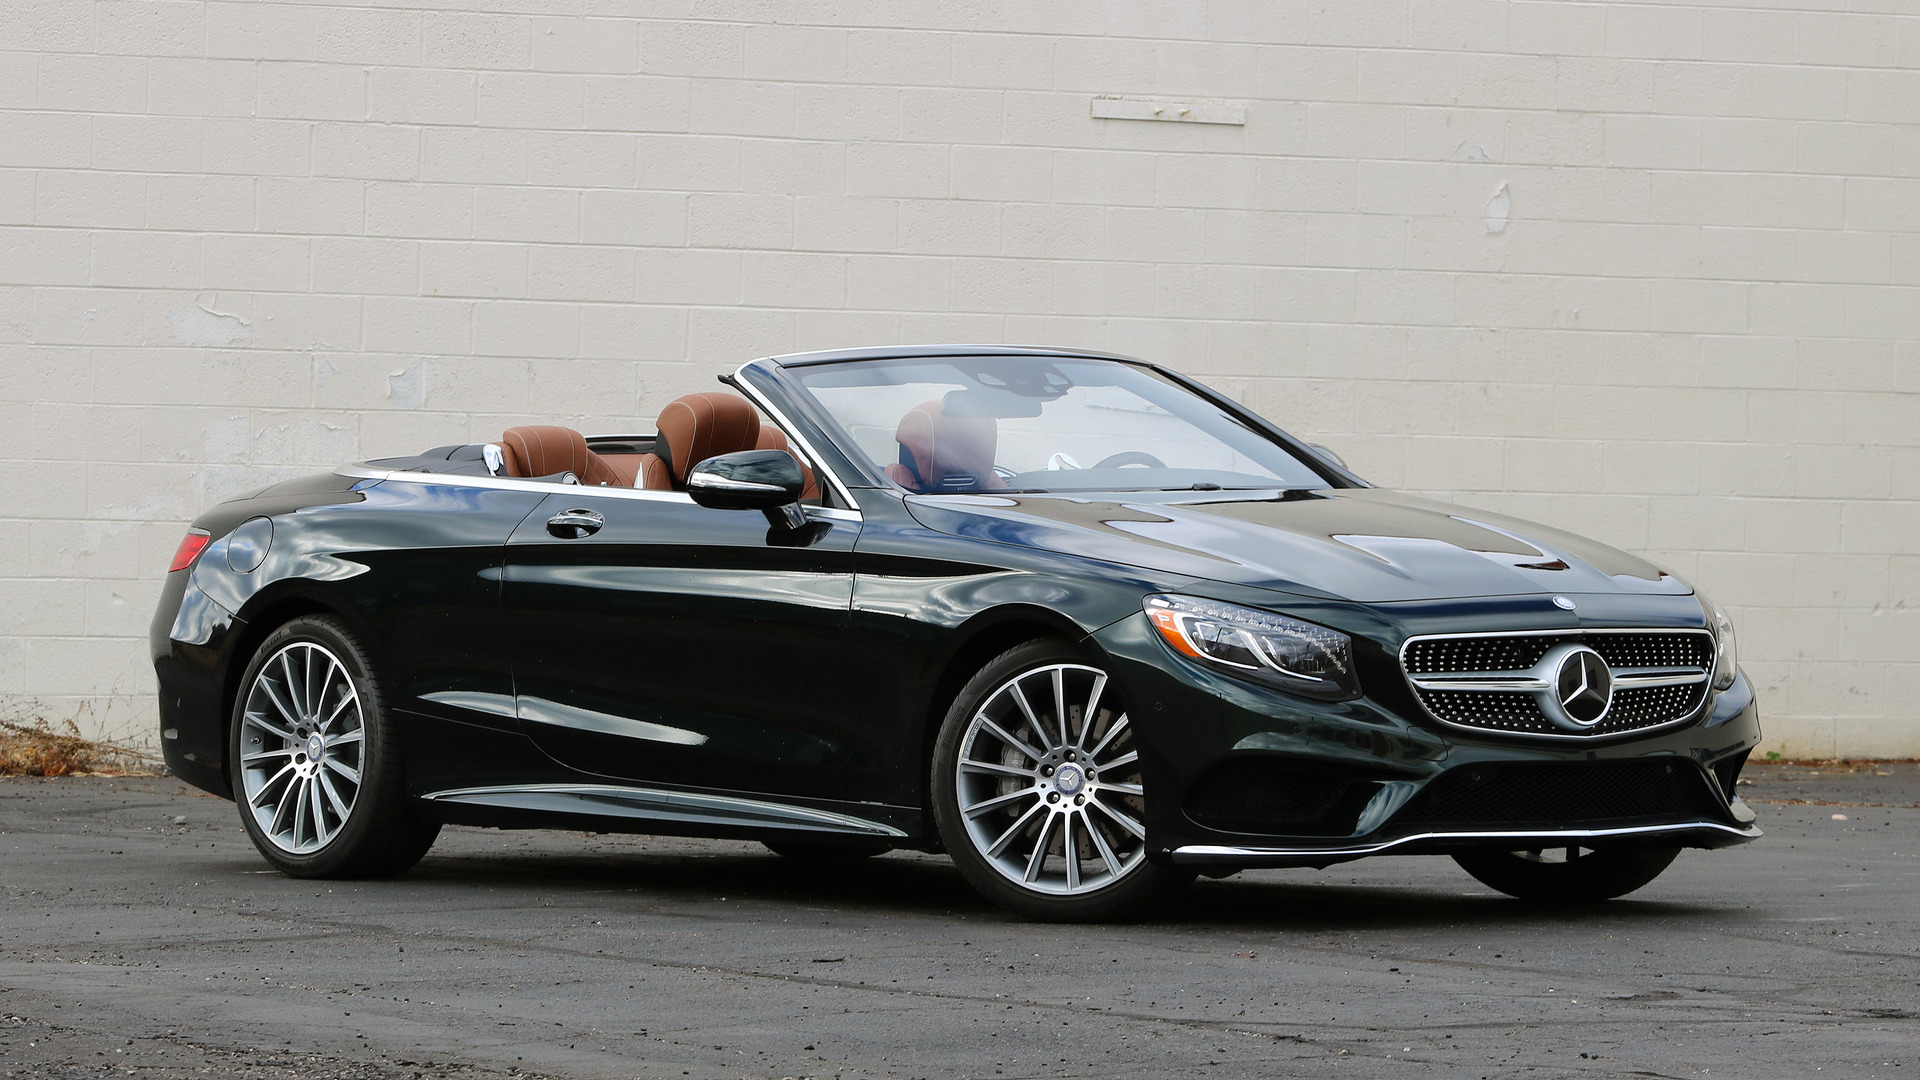 2017 mercedes benz s550 cabriolet review all the luxury for Mercedes benz ratings reviews